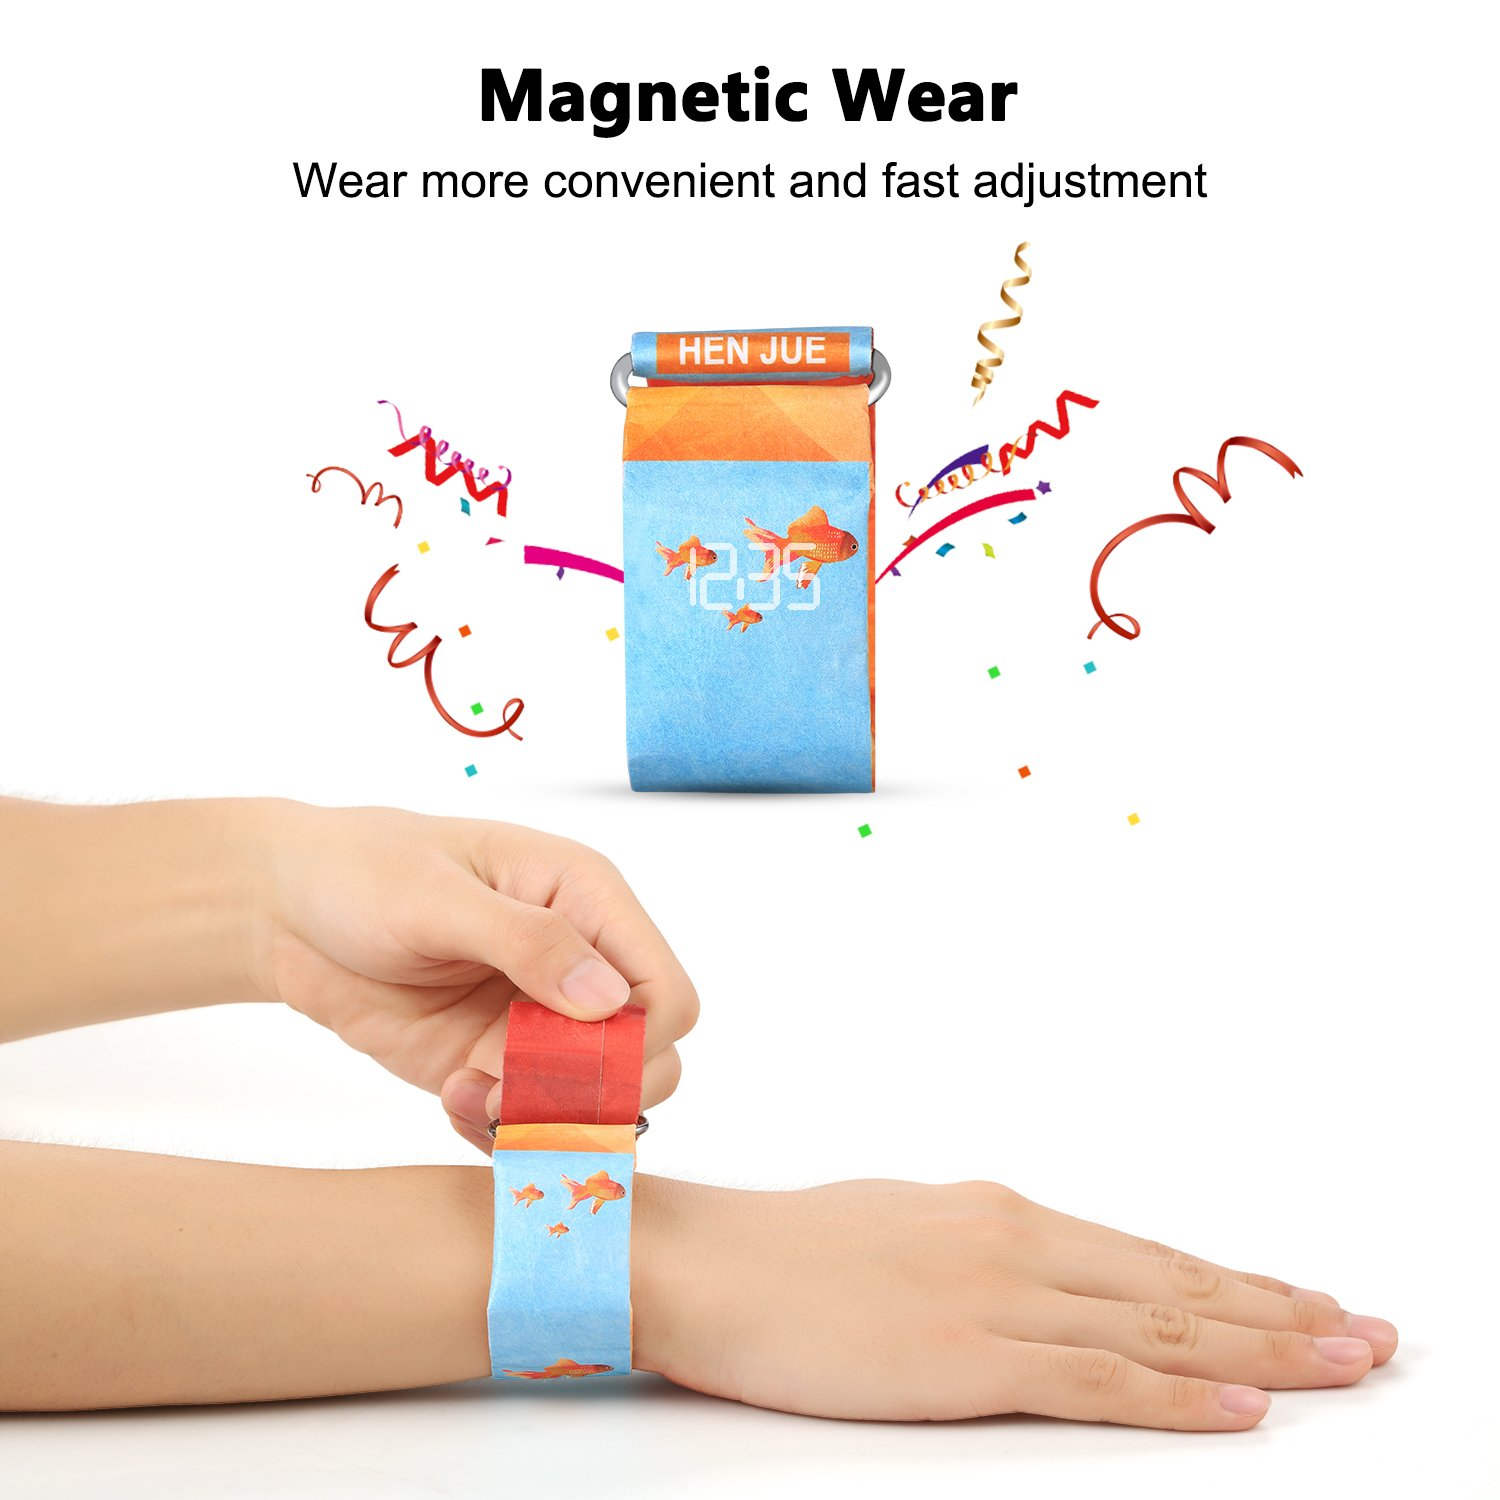 Digital Wrist Watch, Cinsey Waterproof Paper Watch with Magnetic System for Men, Women, Boys, Girls and Kids. Super Light Durable Creative Smart Watch